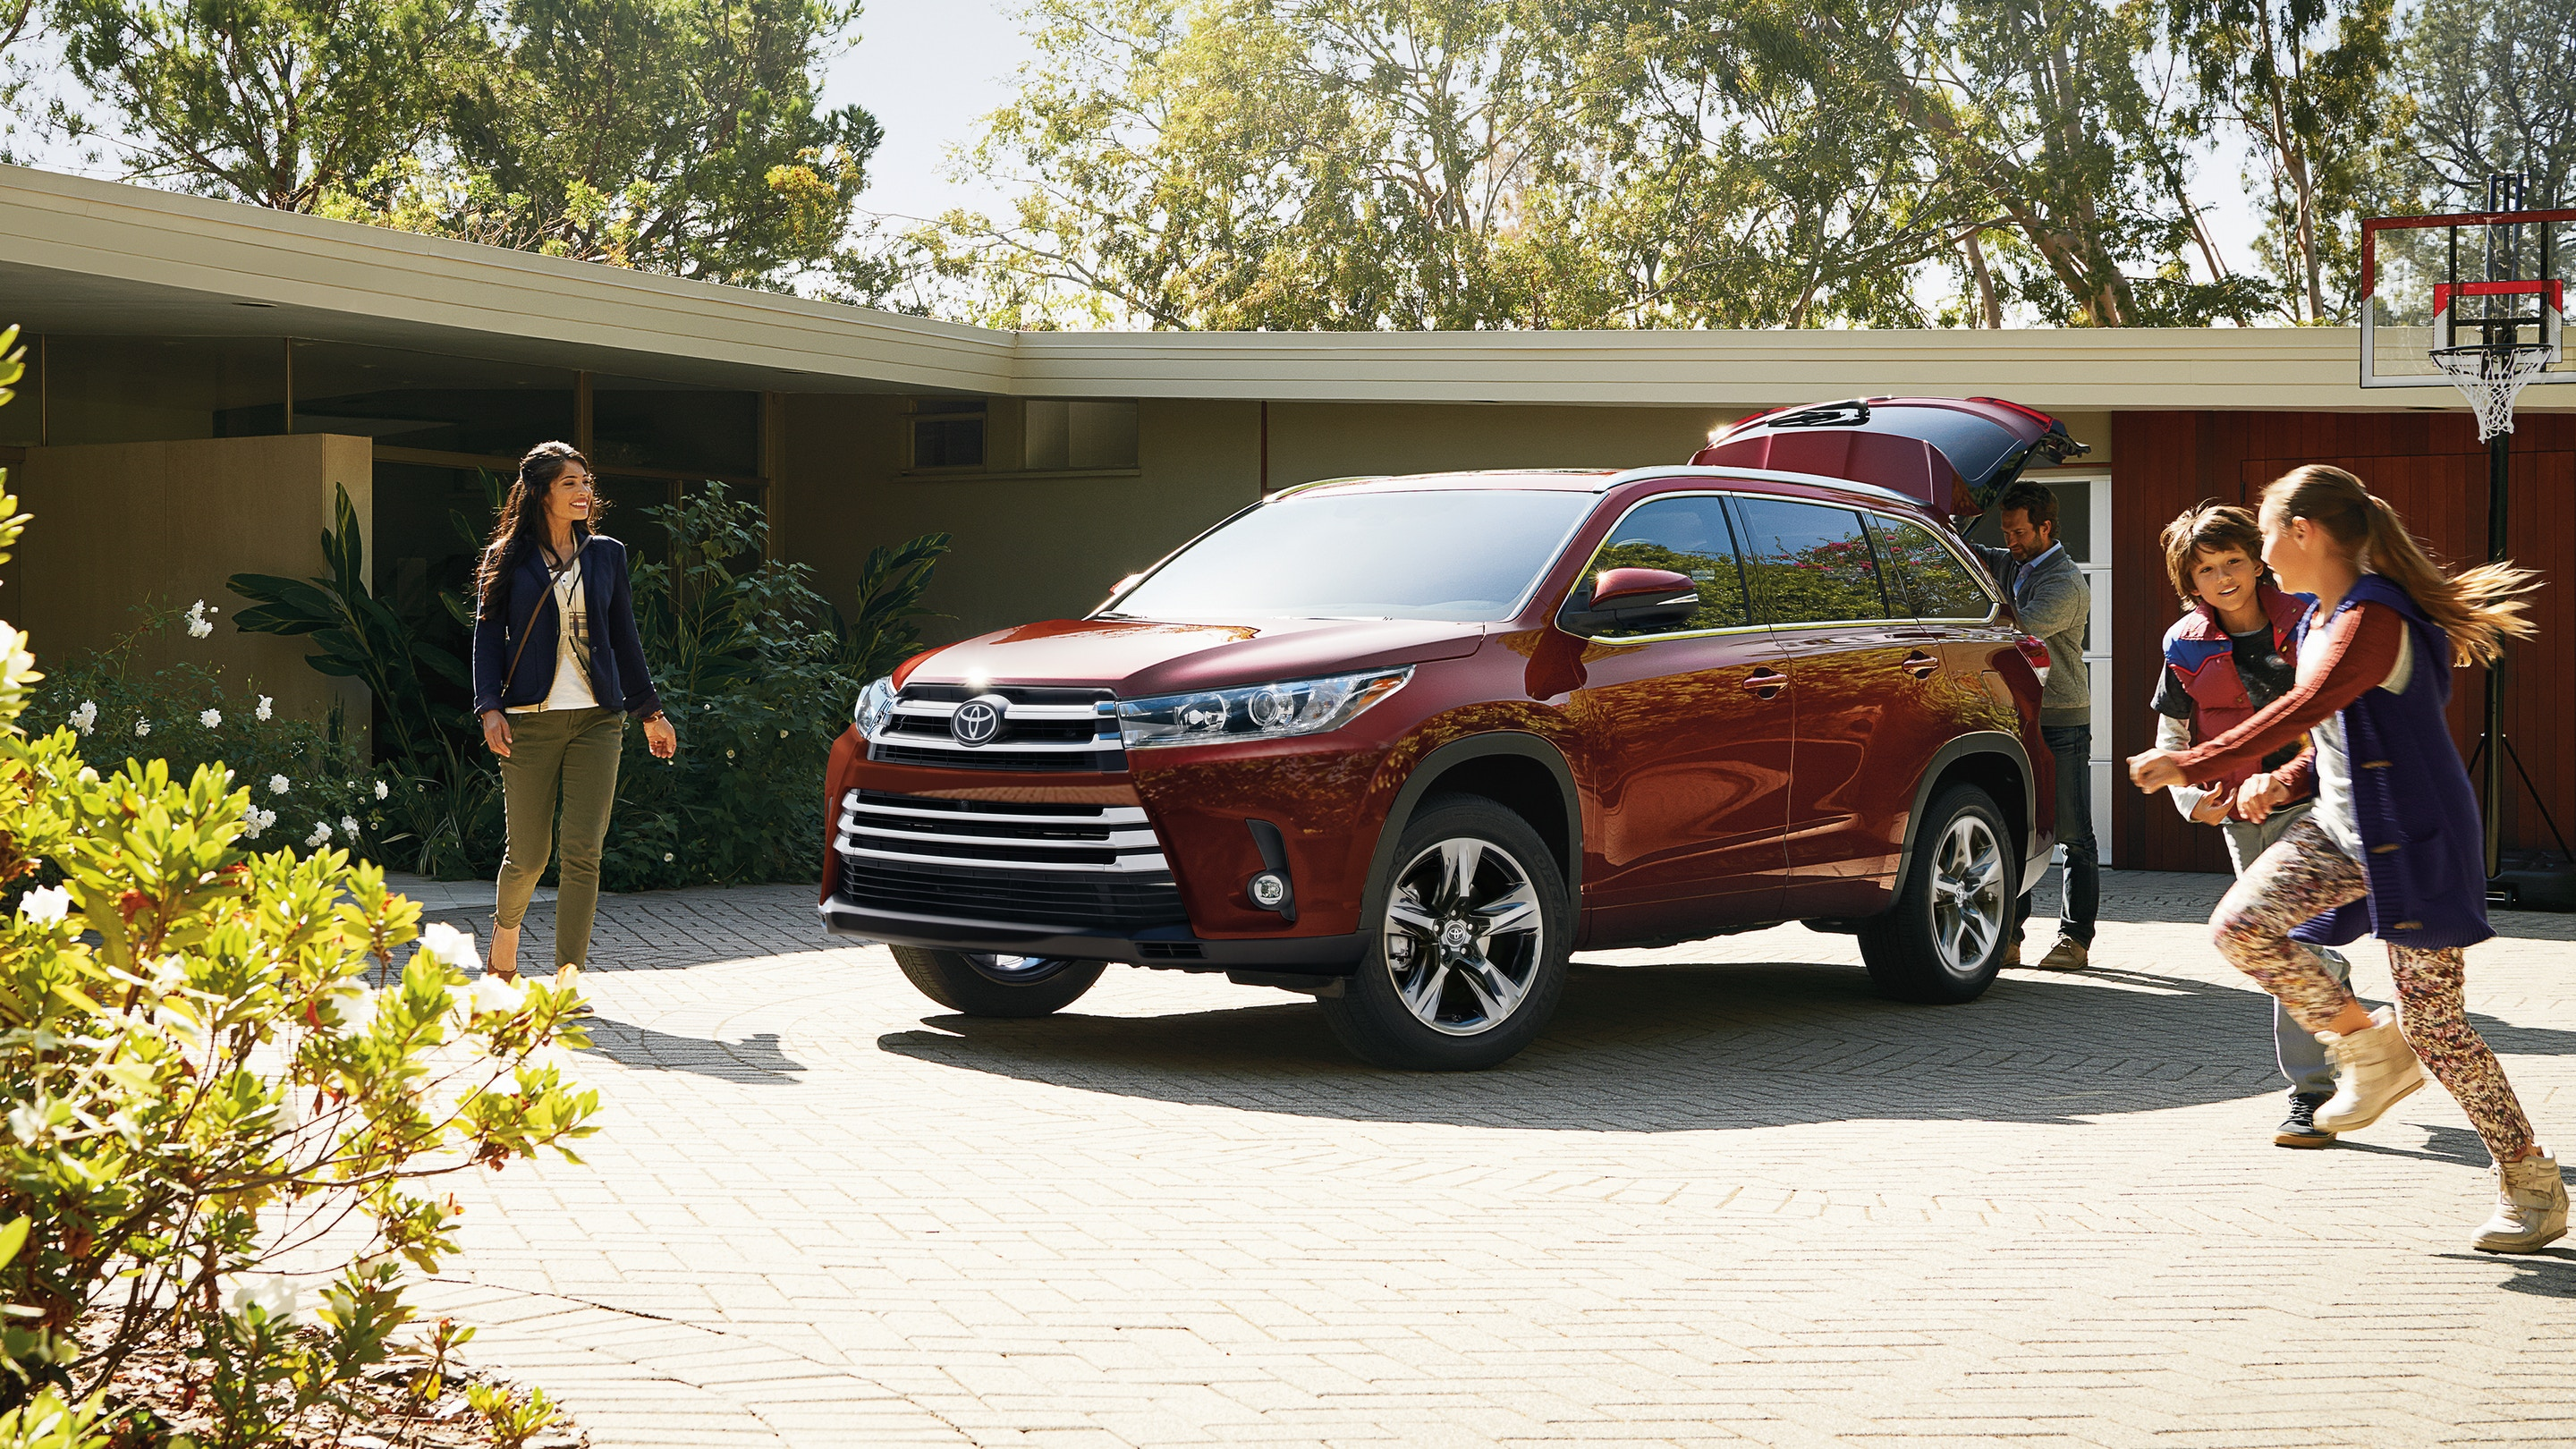 2019 Toyota Highlander Hybrid for Sale near Overland Park, KS, 66013